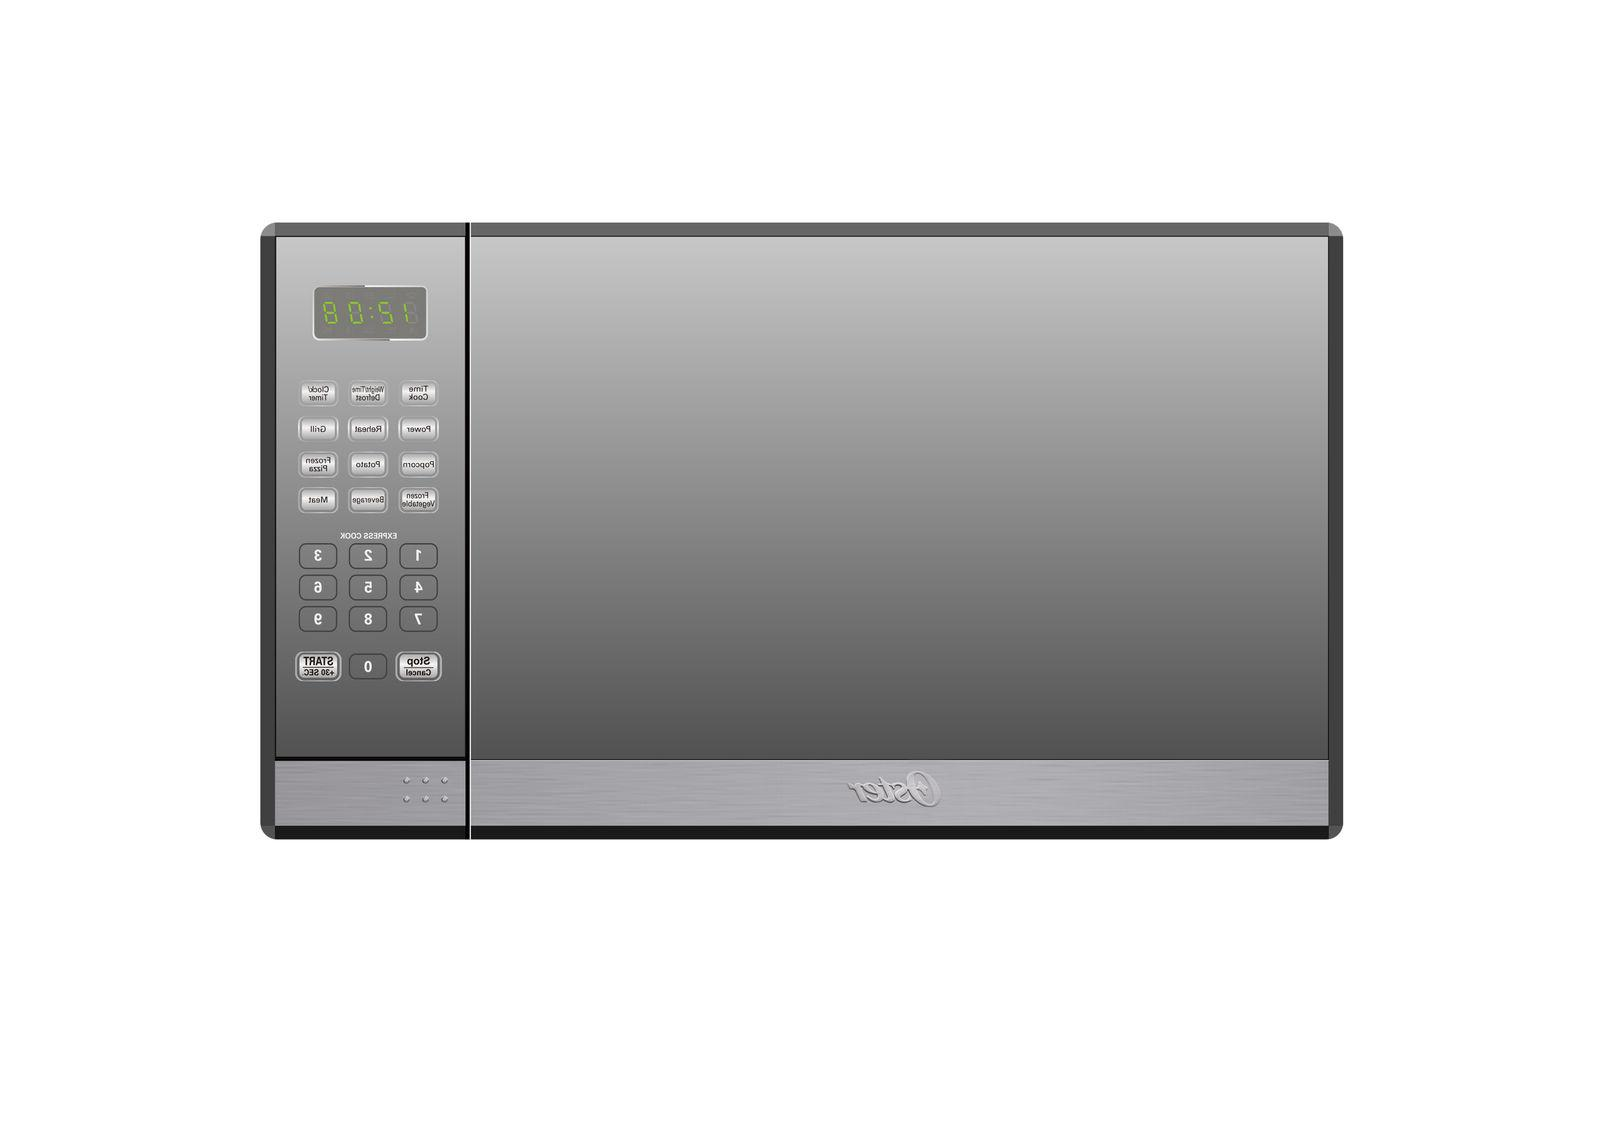 Oster Cu. Stainless Steel with Mirror Finish Microwave Grill